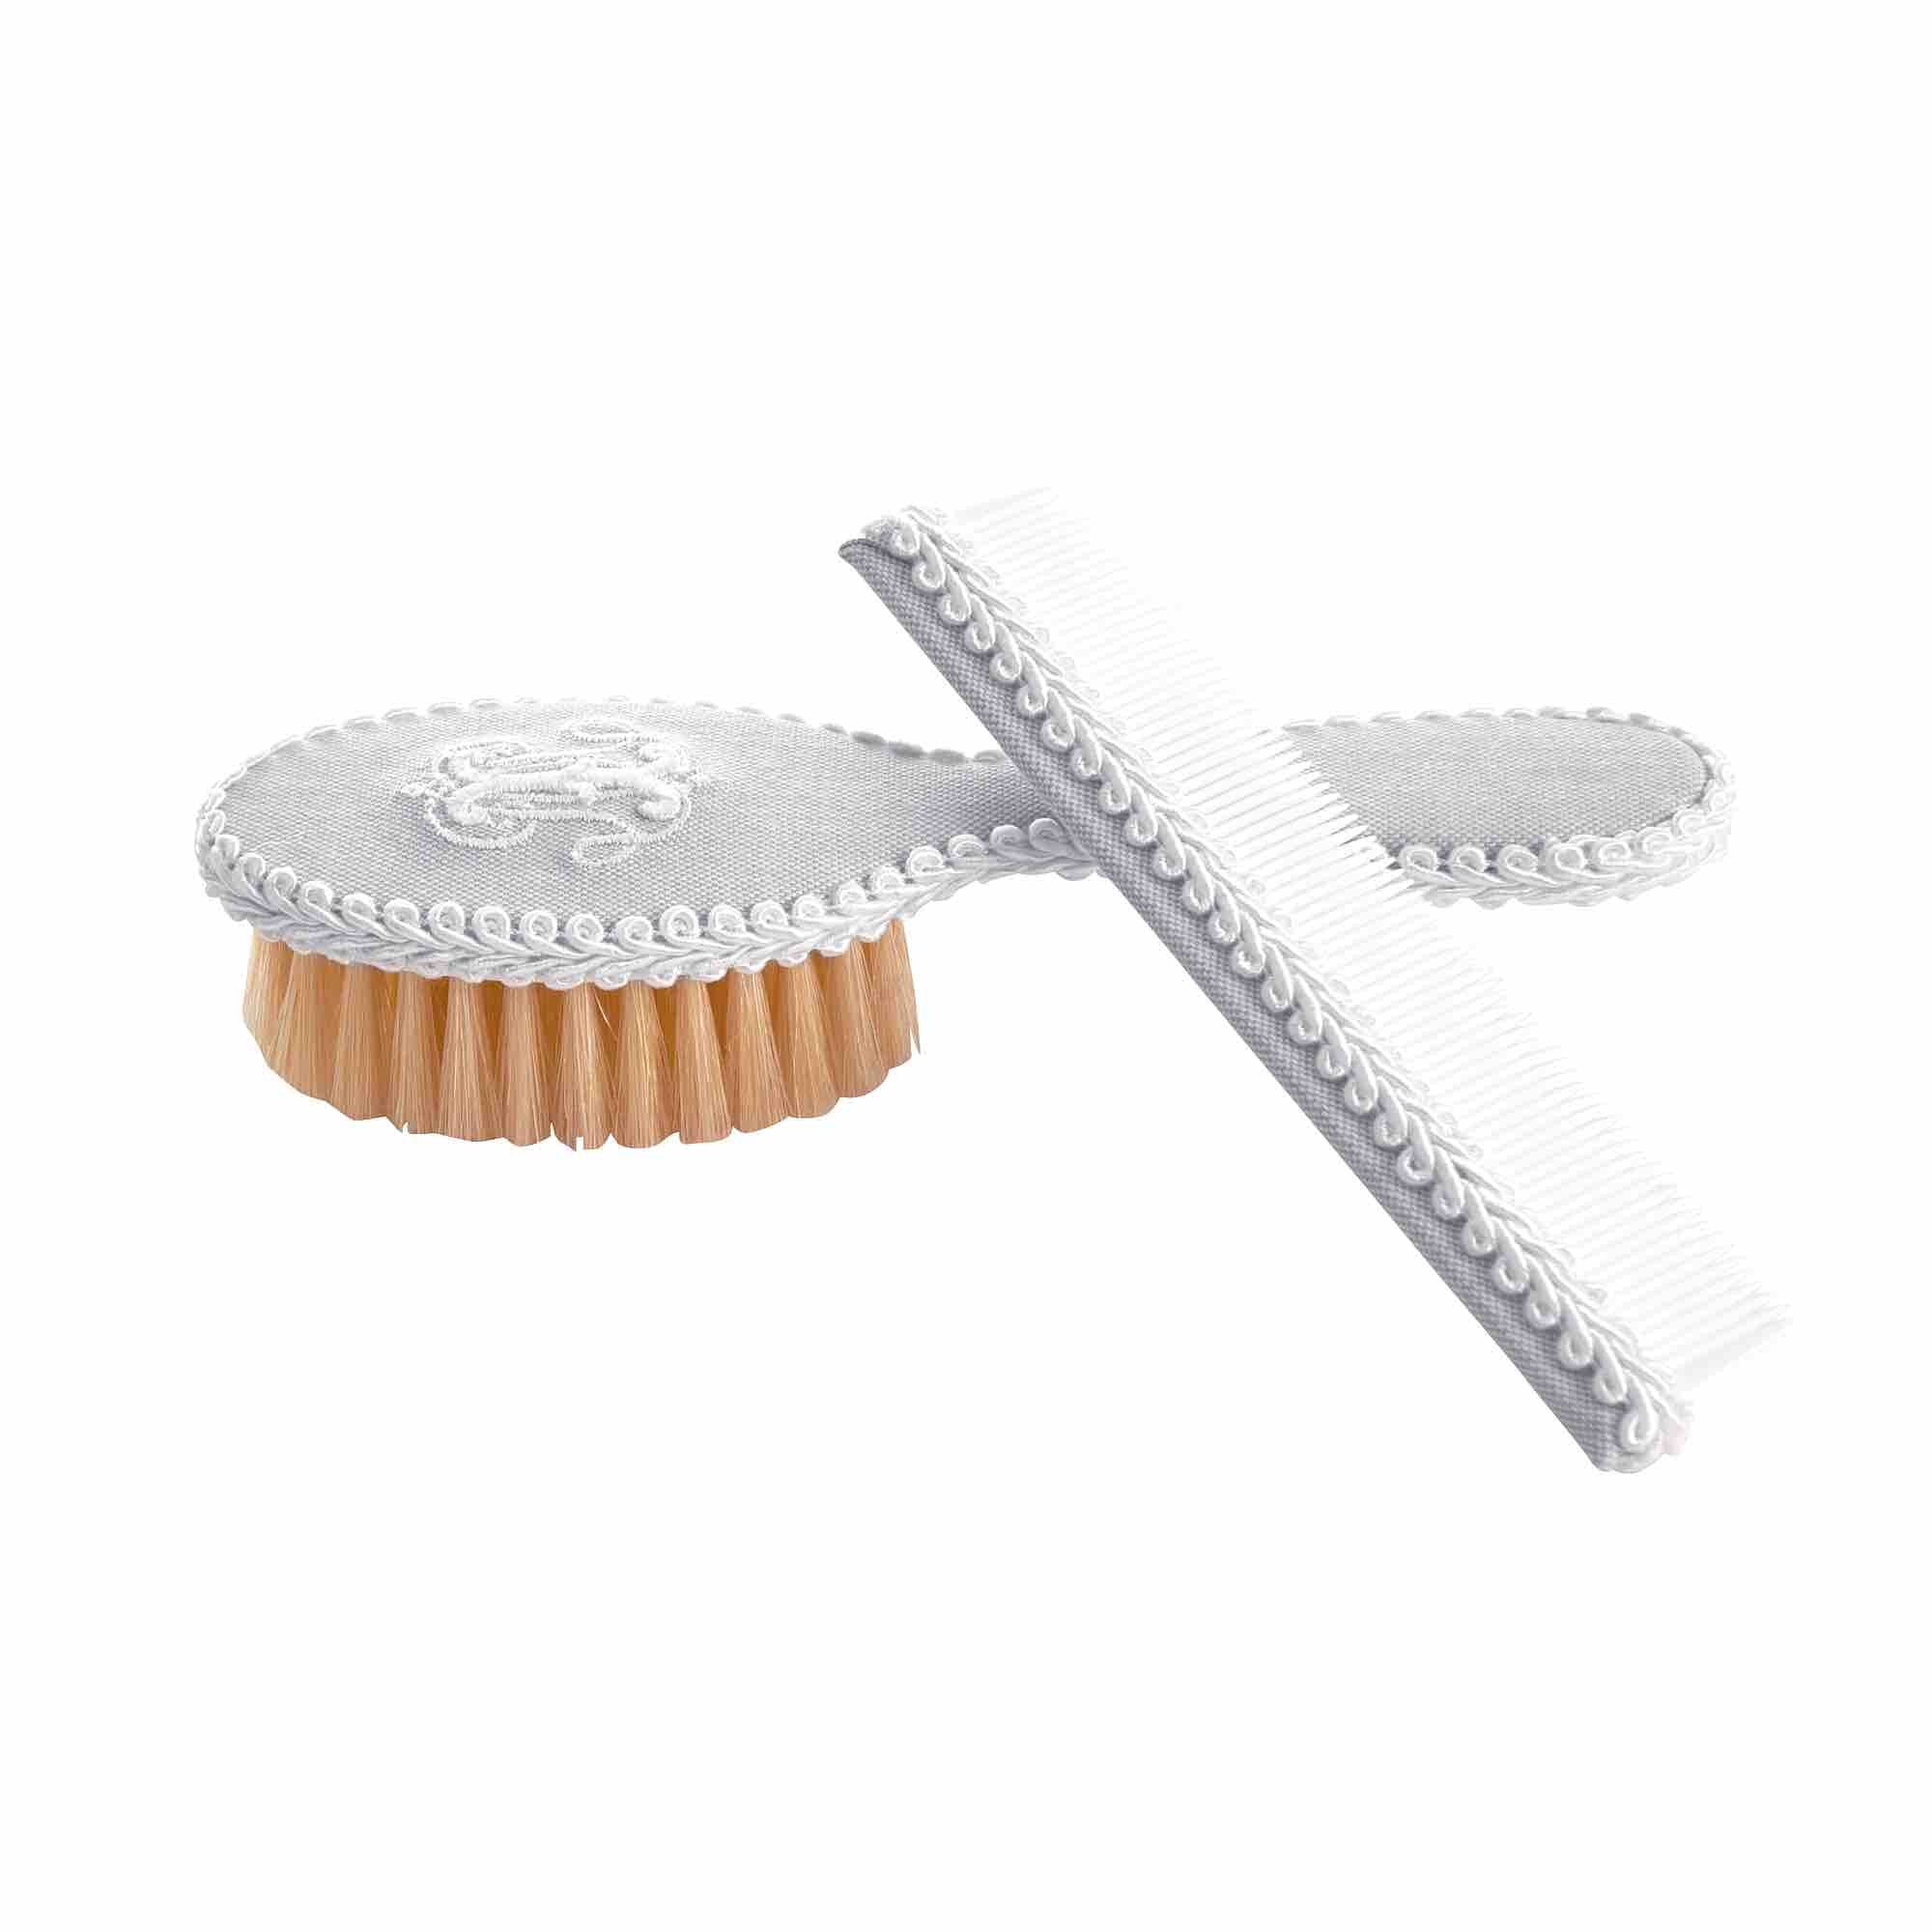 Theophile & Patachou Brush & Comb - Pearl